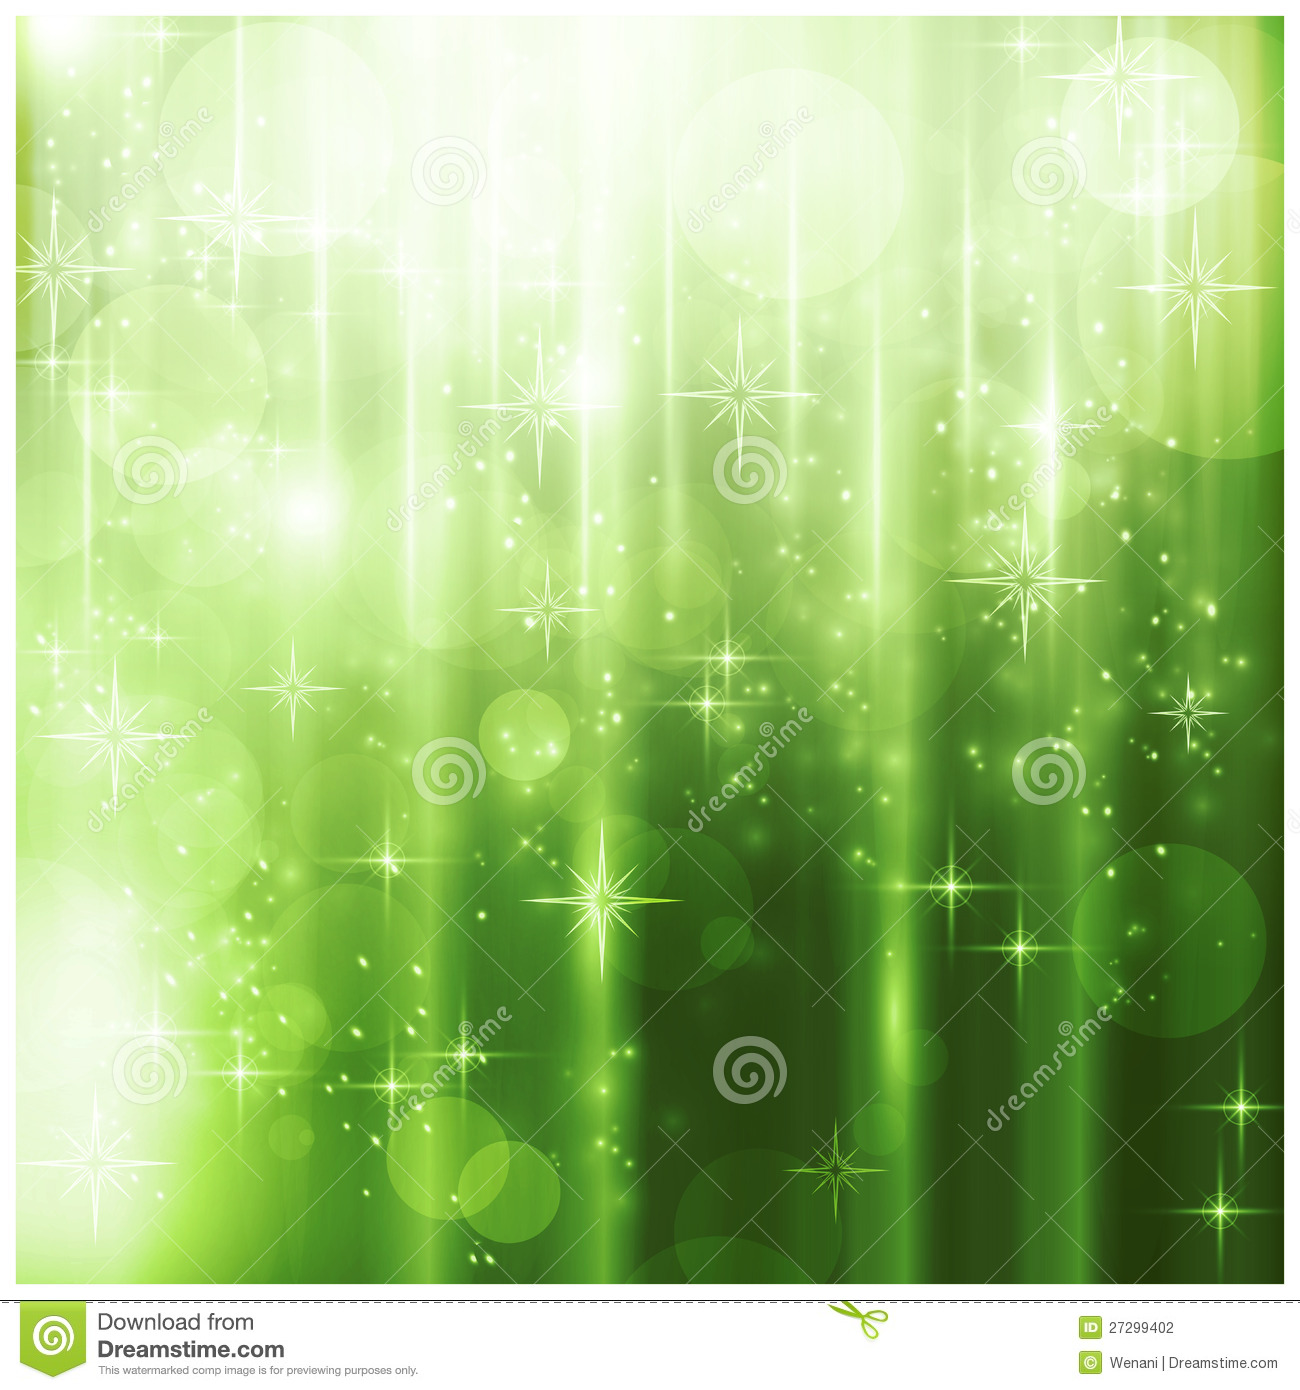 Elegant Green Christmas Card With Sparkling Lights Stock